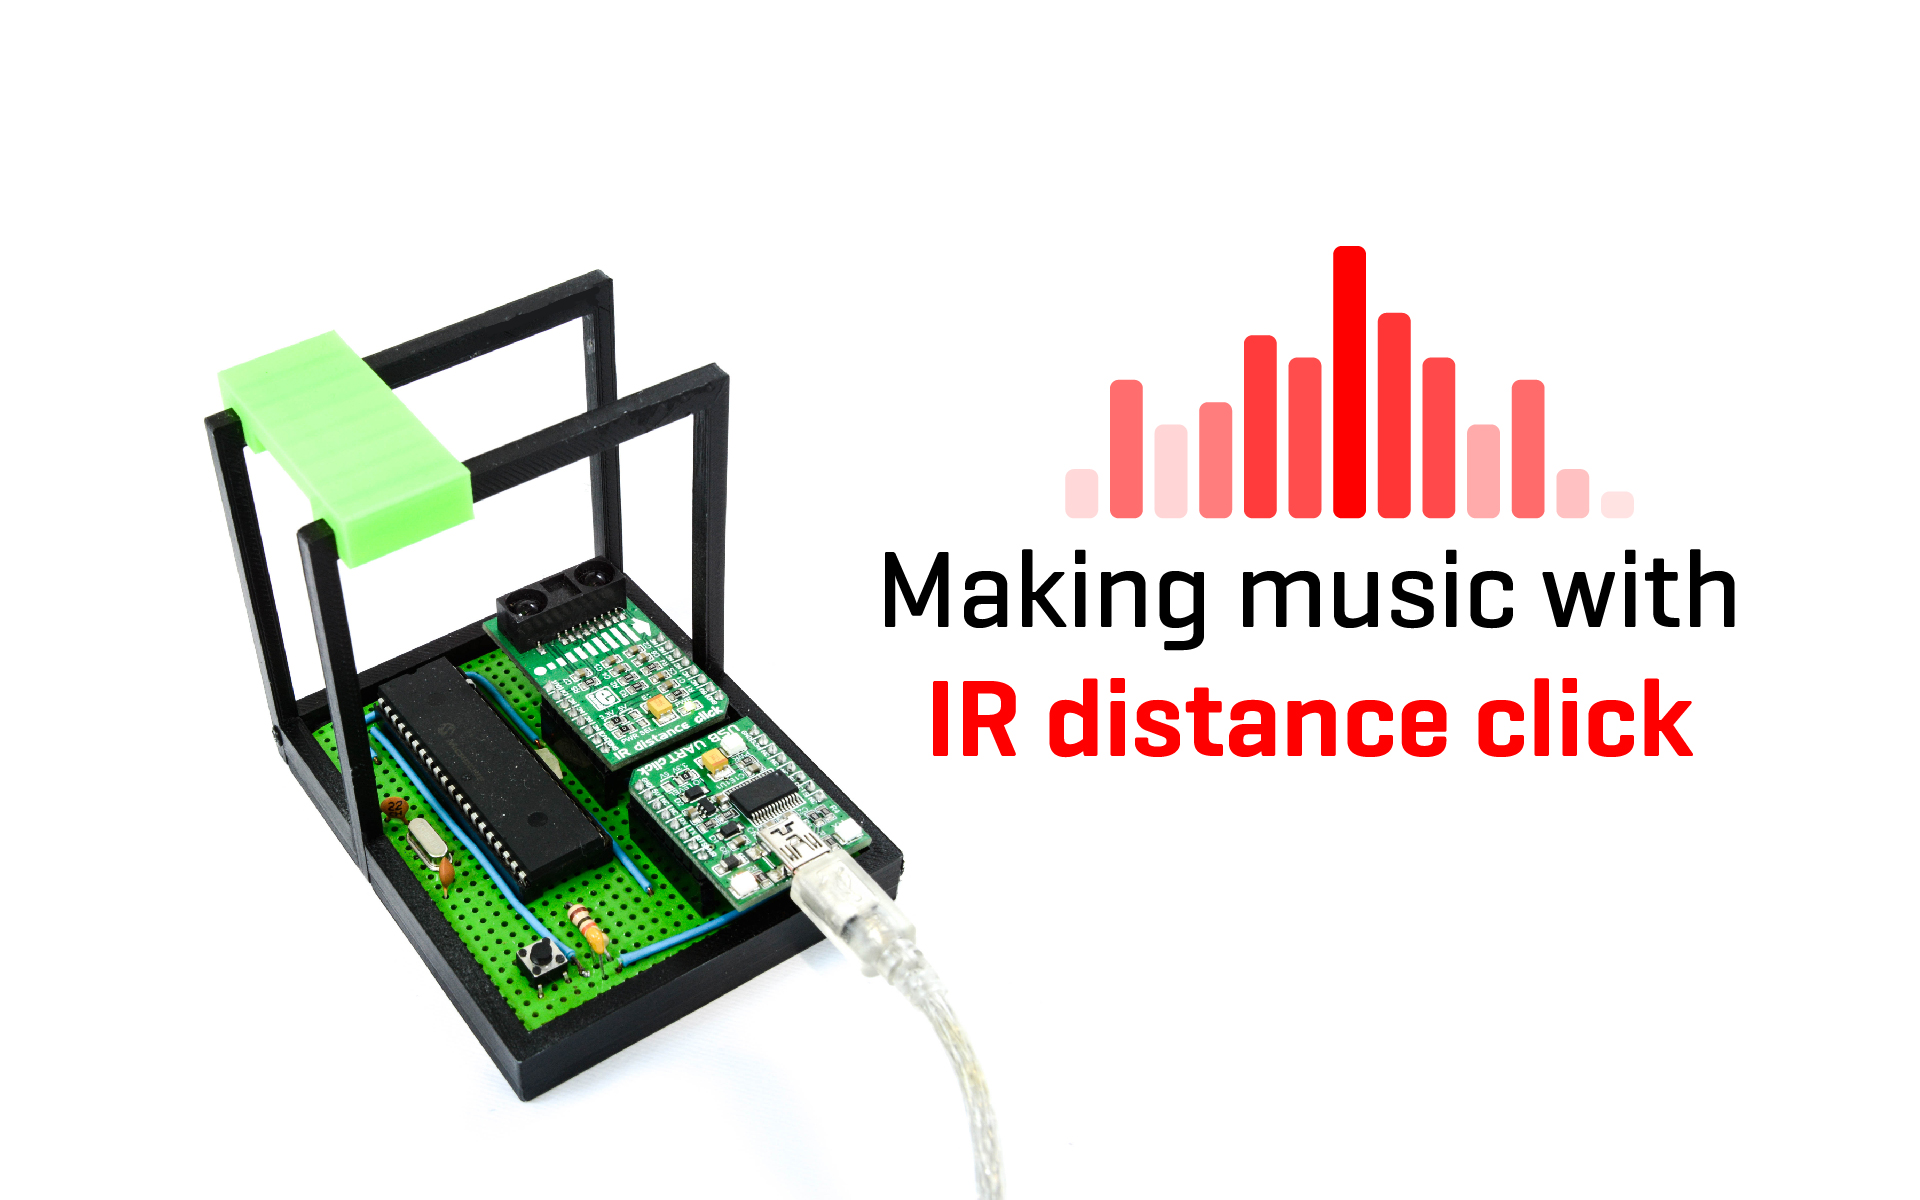 Making music with the IR distance click - a digital Theremin project